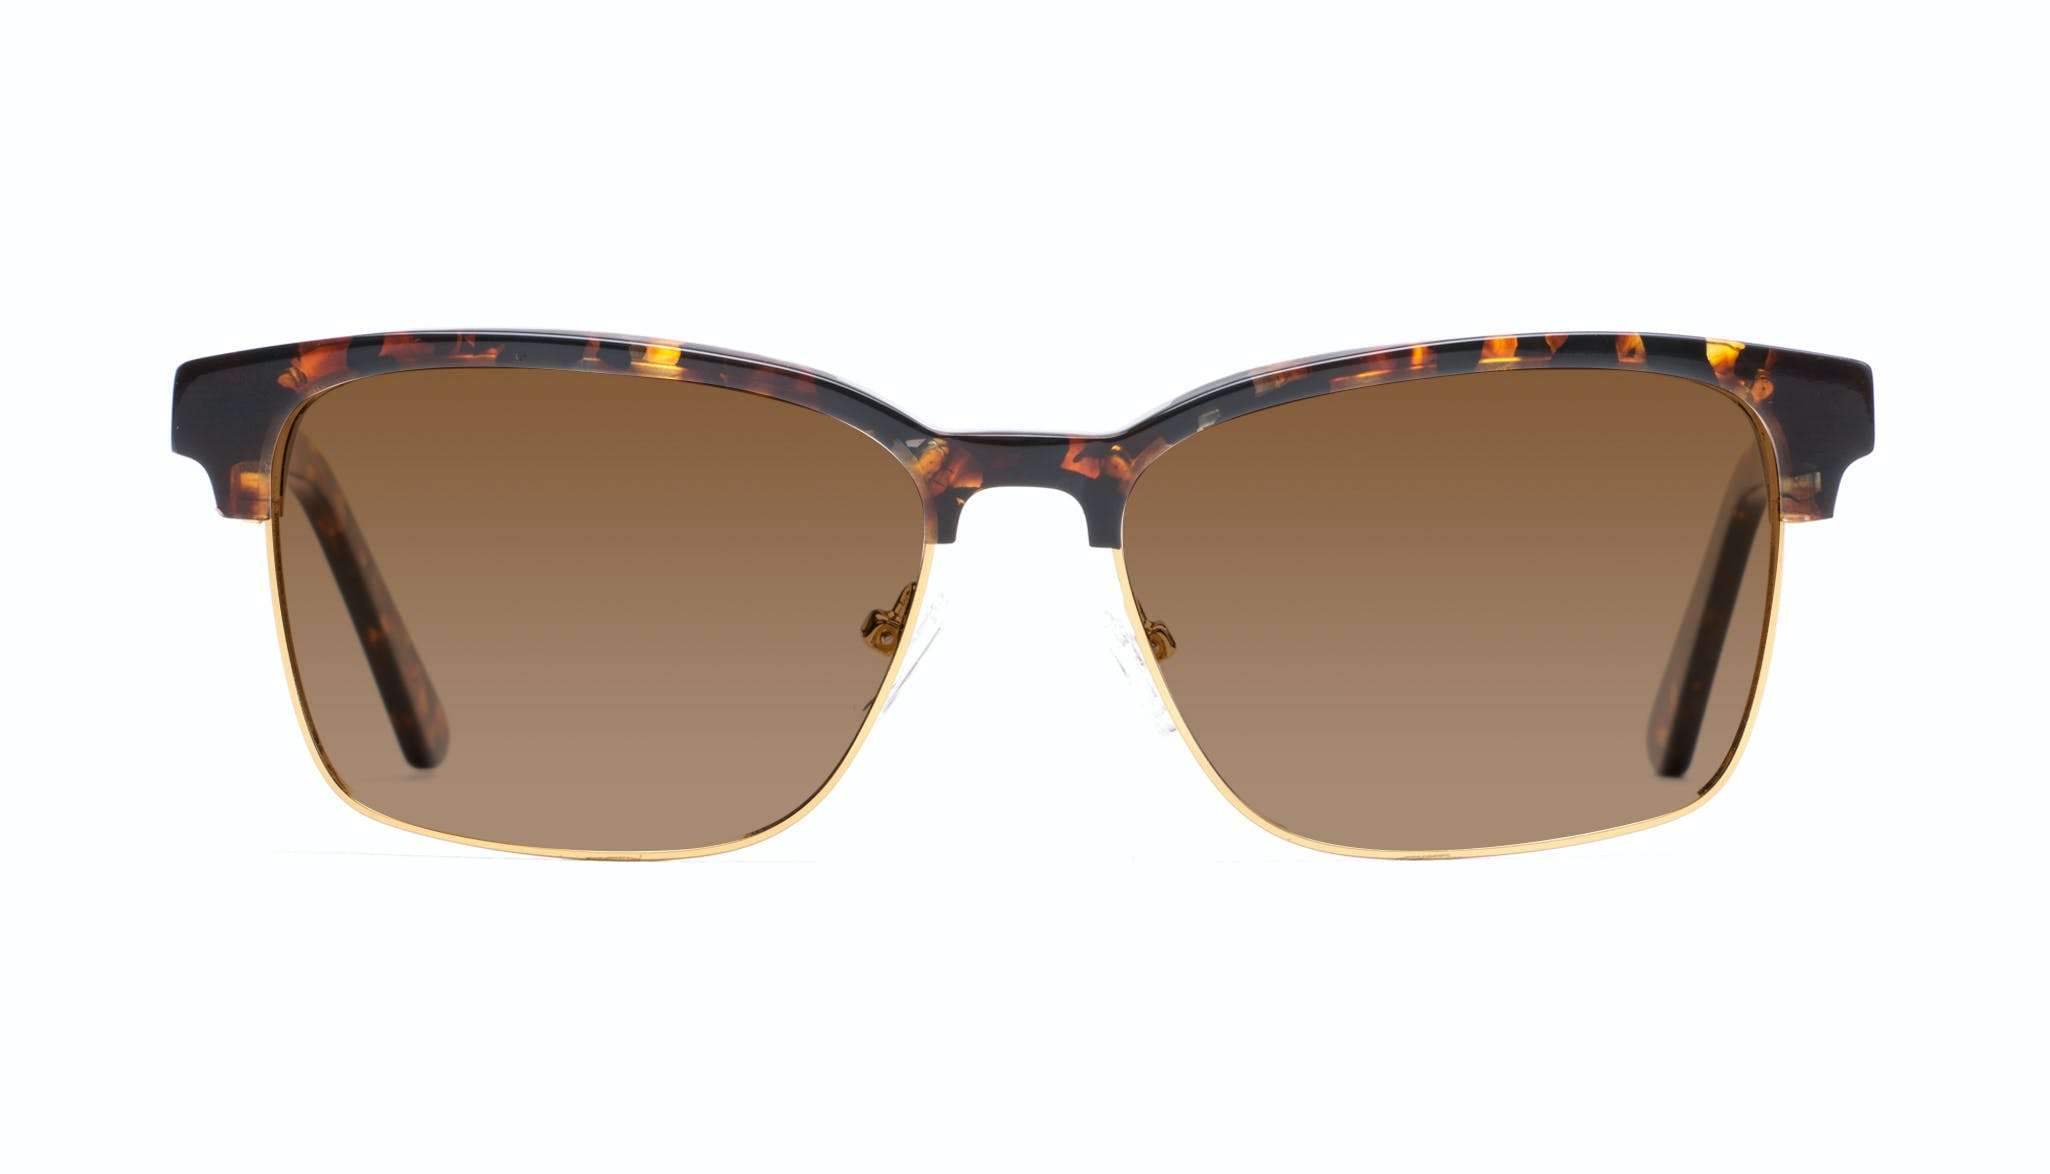 Affordable Fashion Glasses Rectangle Square Sunglasses Men Gallery Mahogany Front